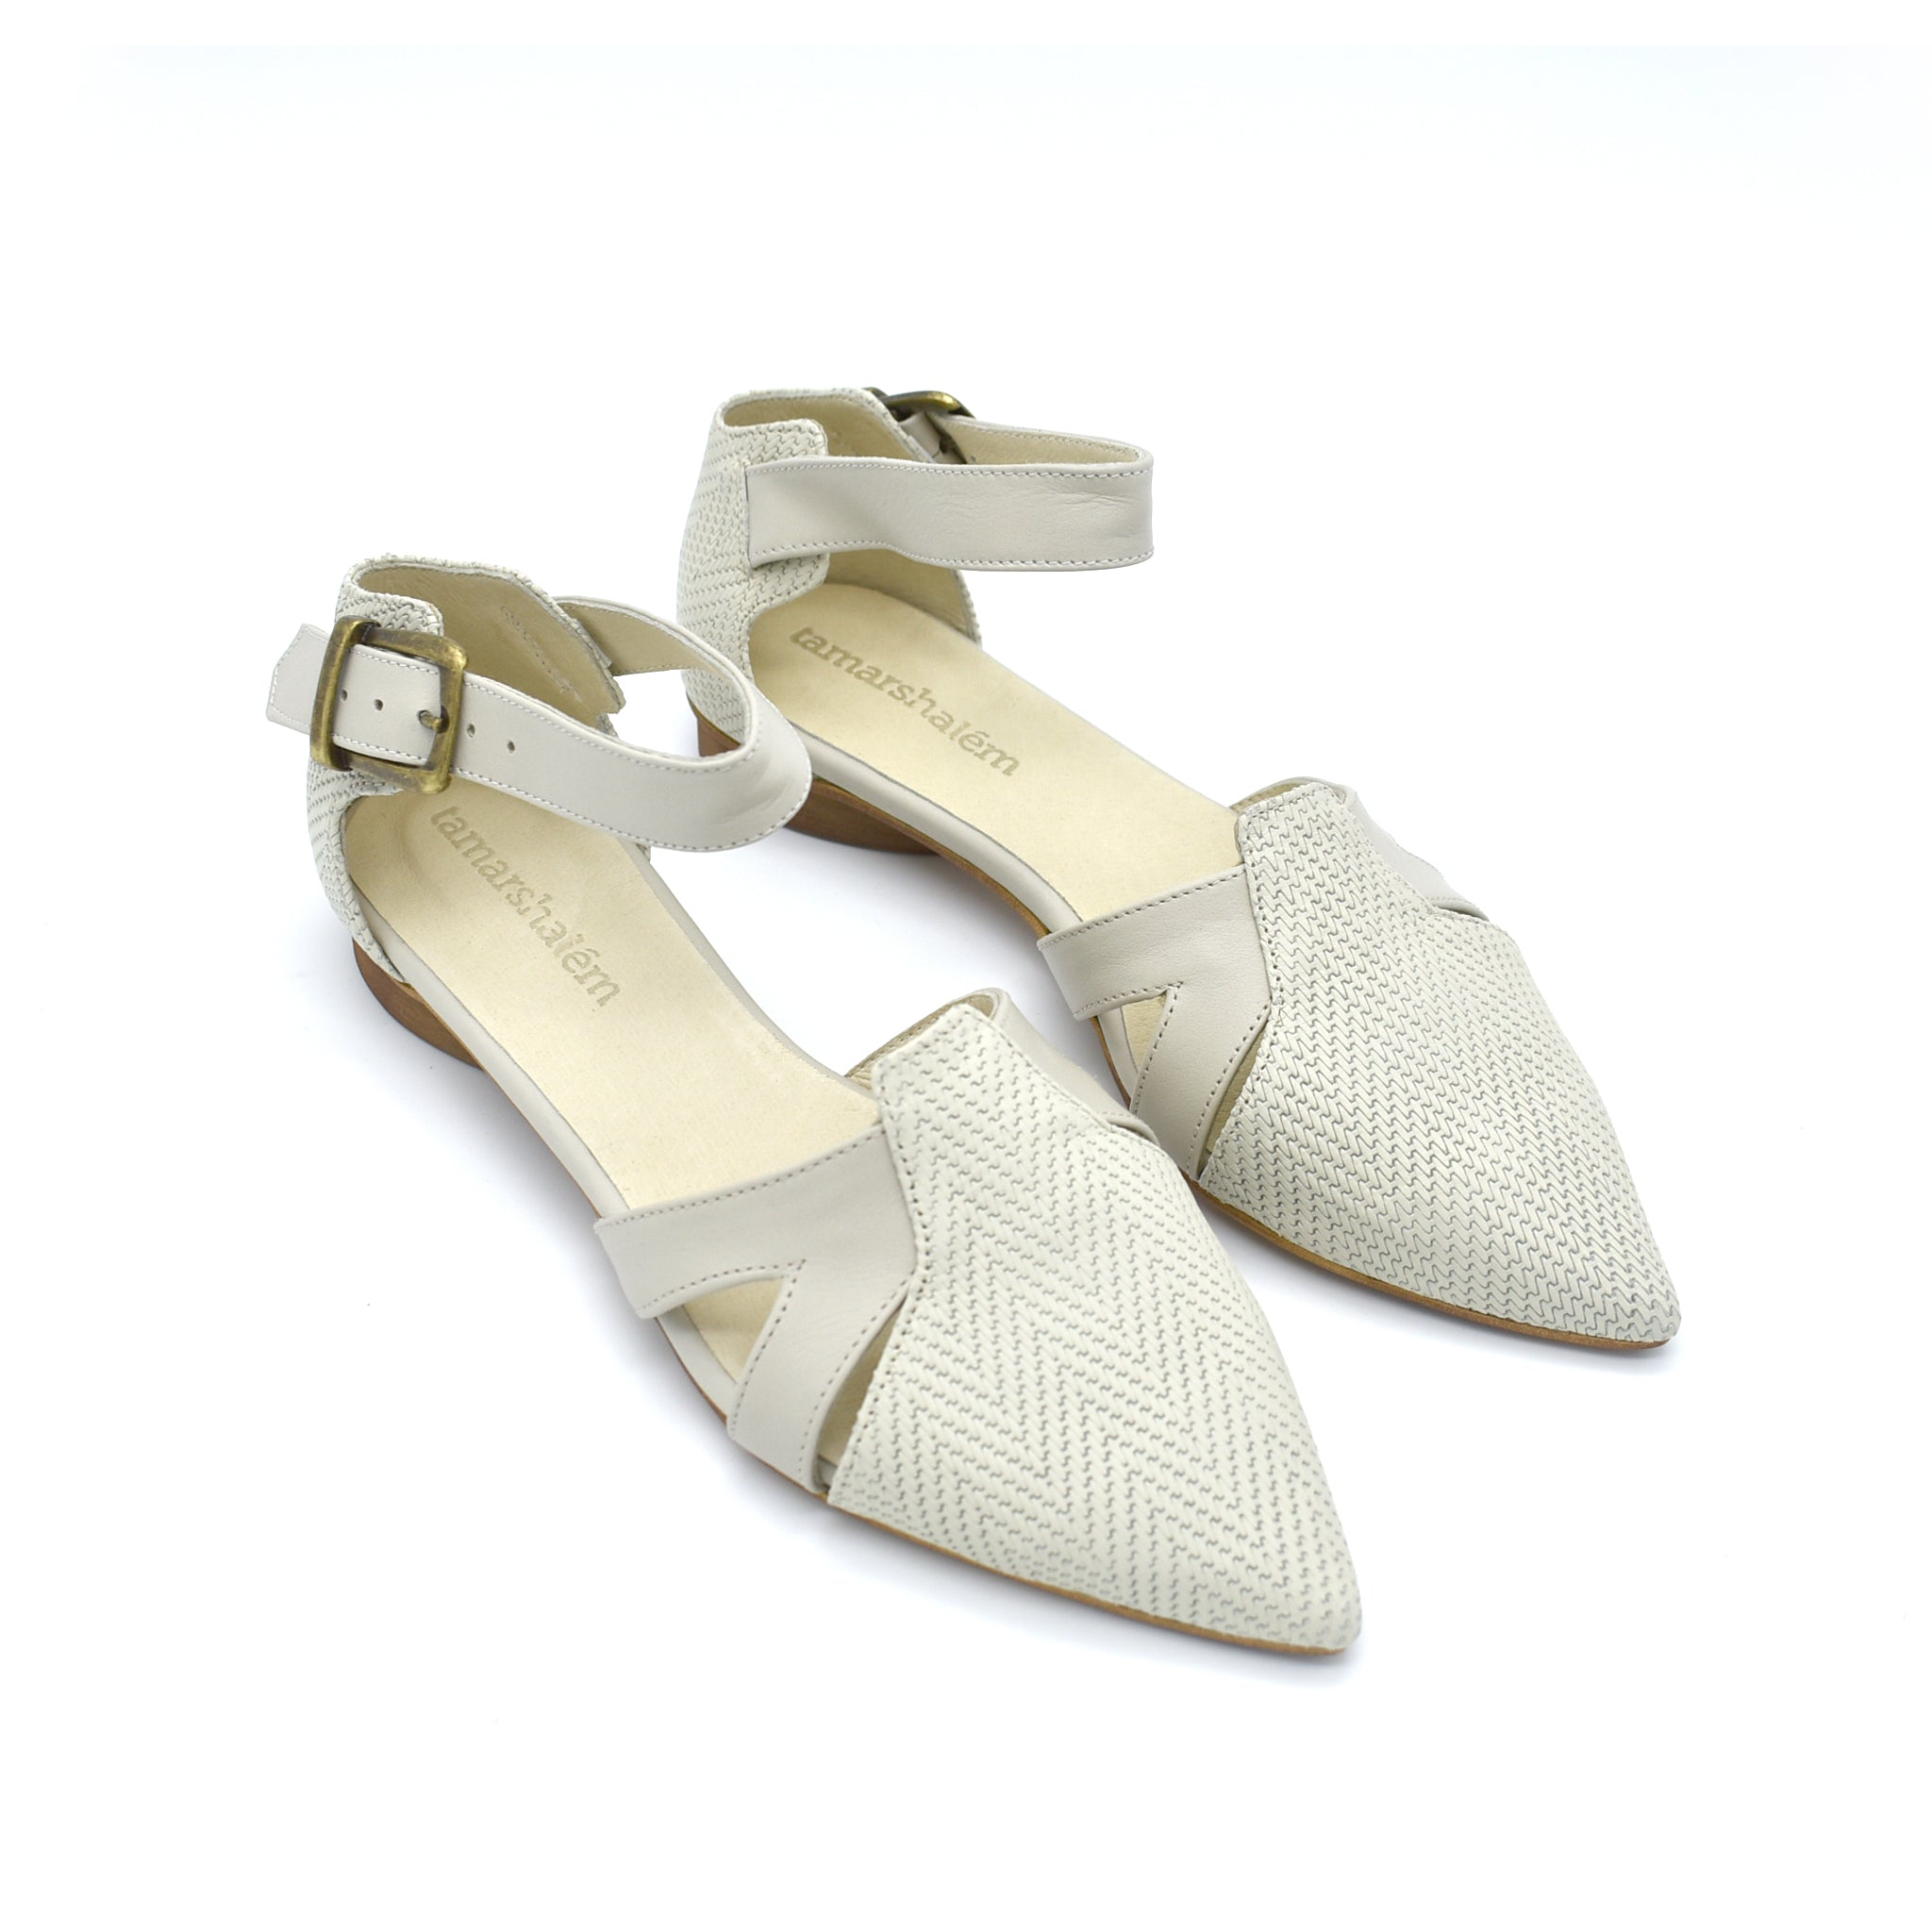 Vivian buckle closure sandals in stone